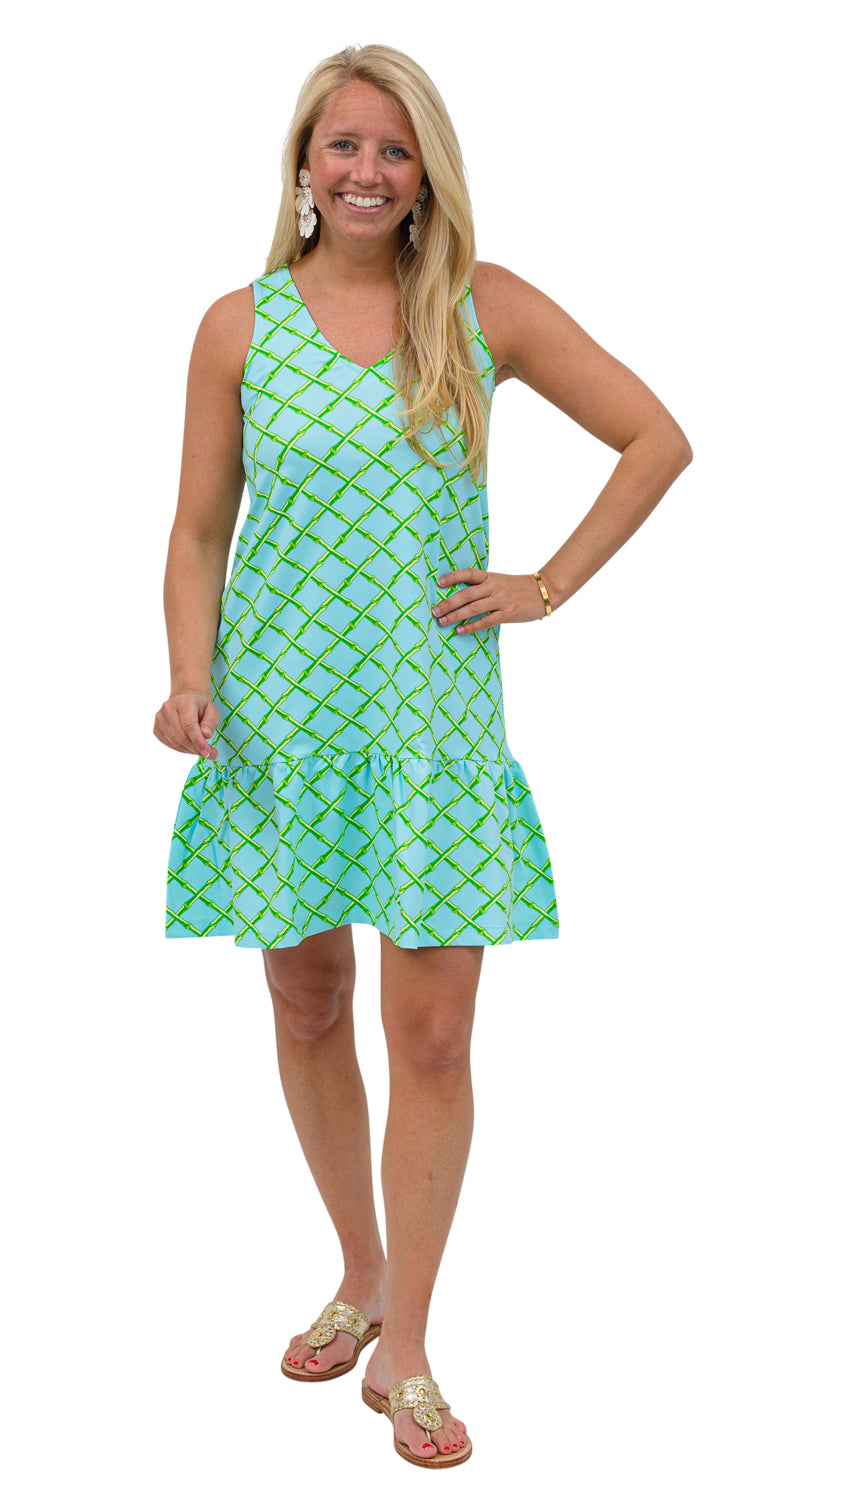 Ellie Dress - Turq/Green Bamboo Lattice